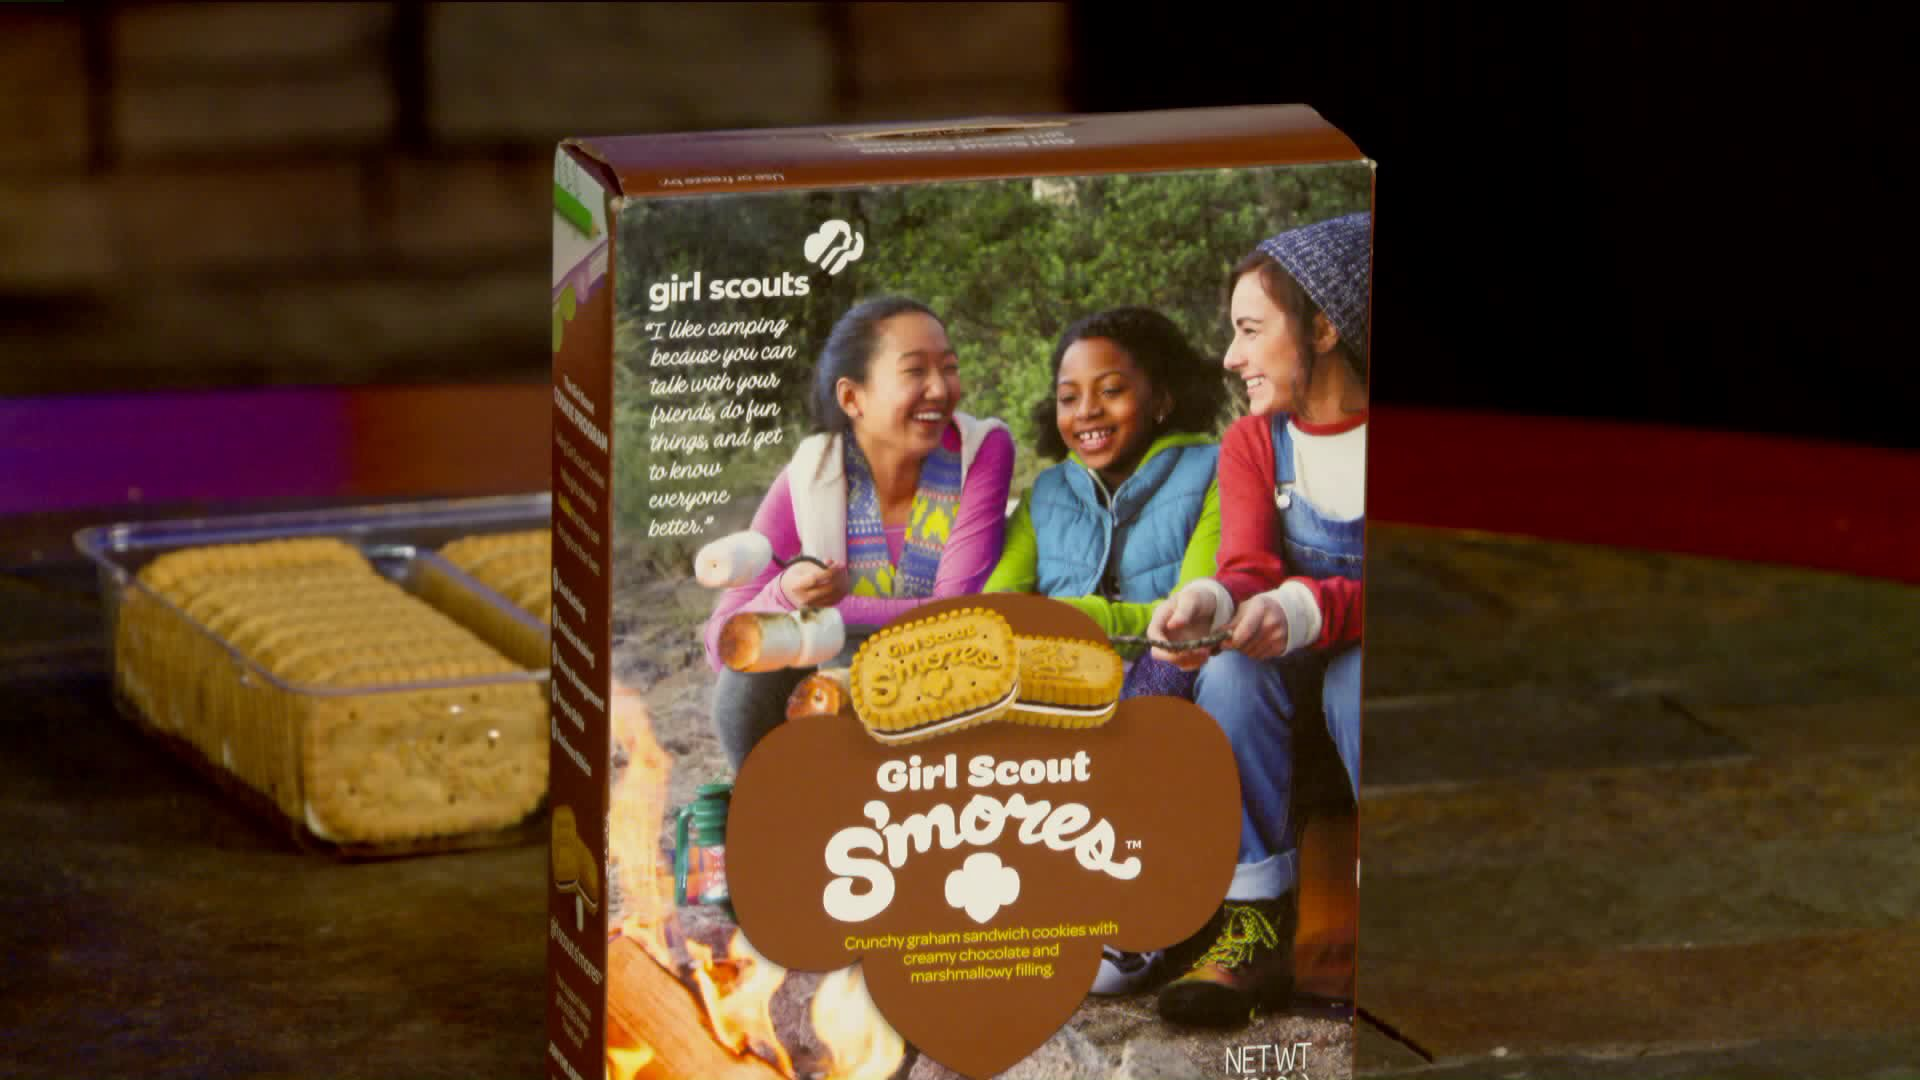 girl scouts introduces new s mores cookie flavor fort